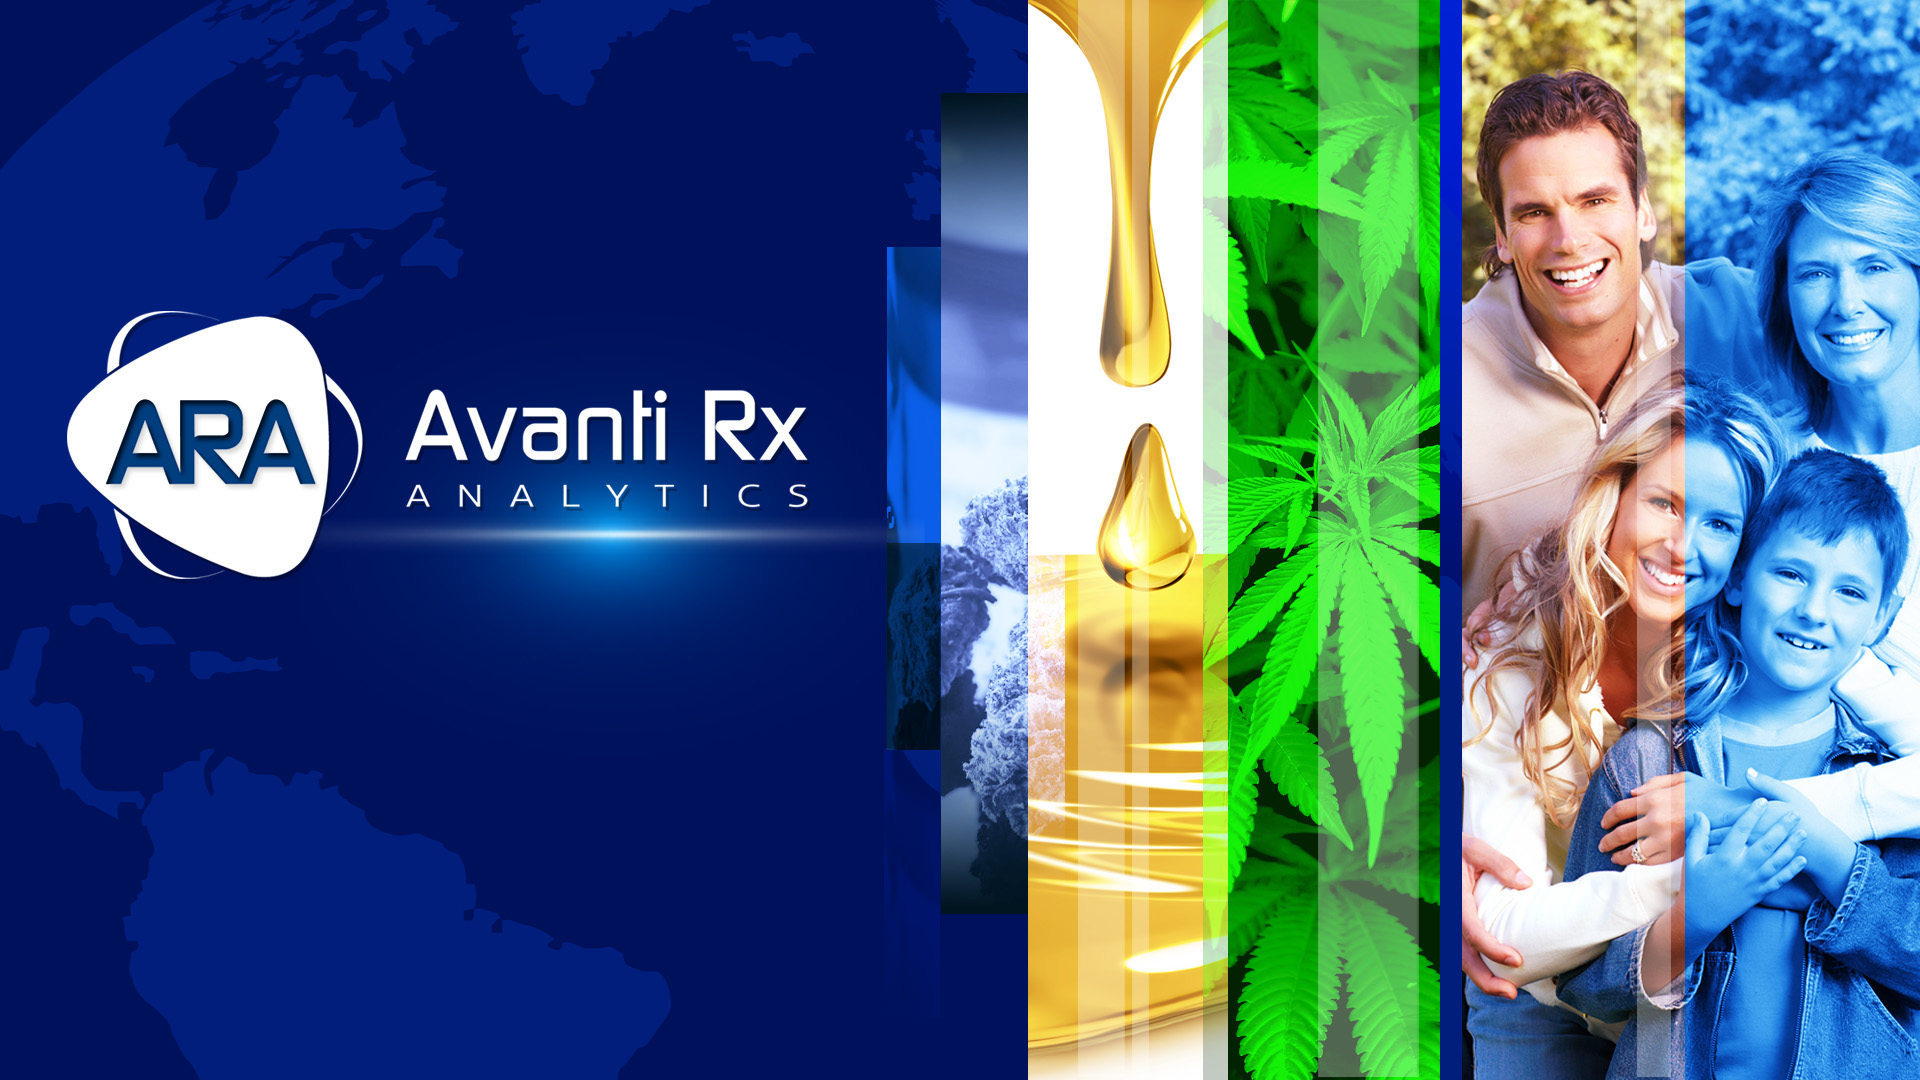 ARA Avanti Rx Analytics